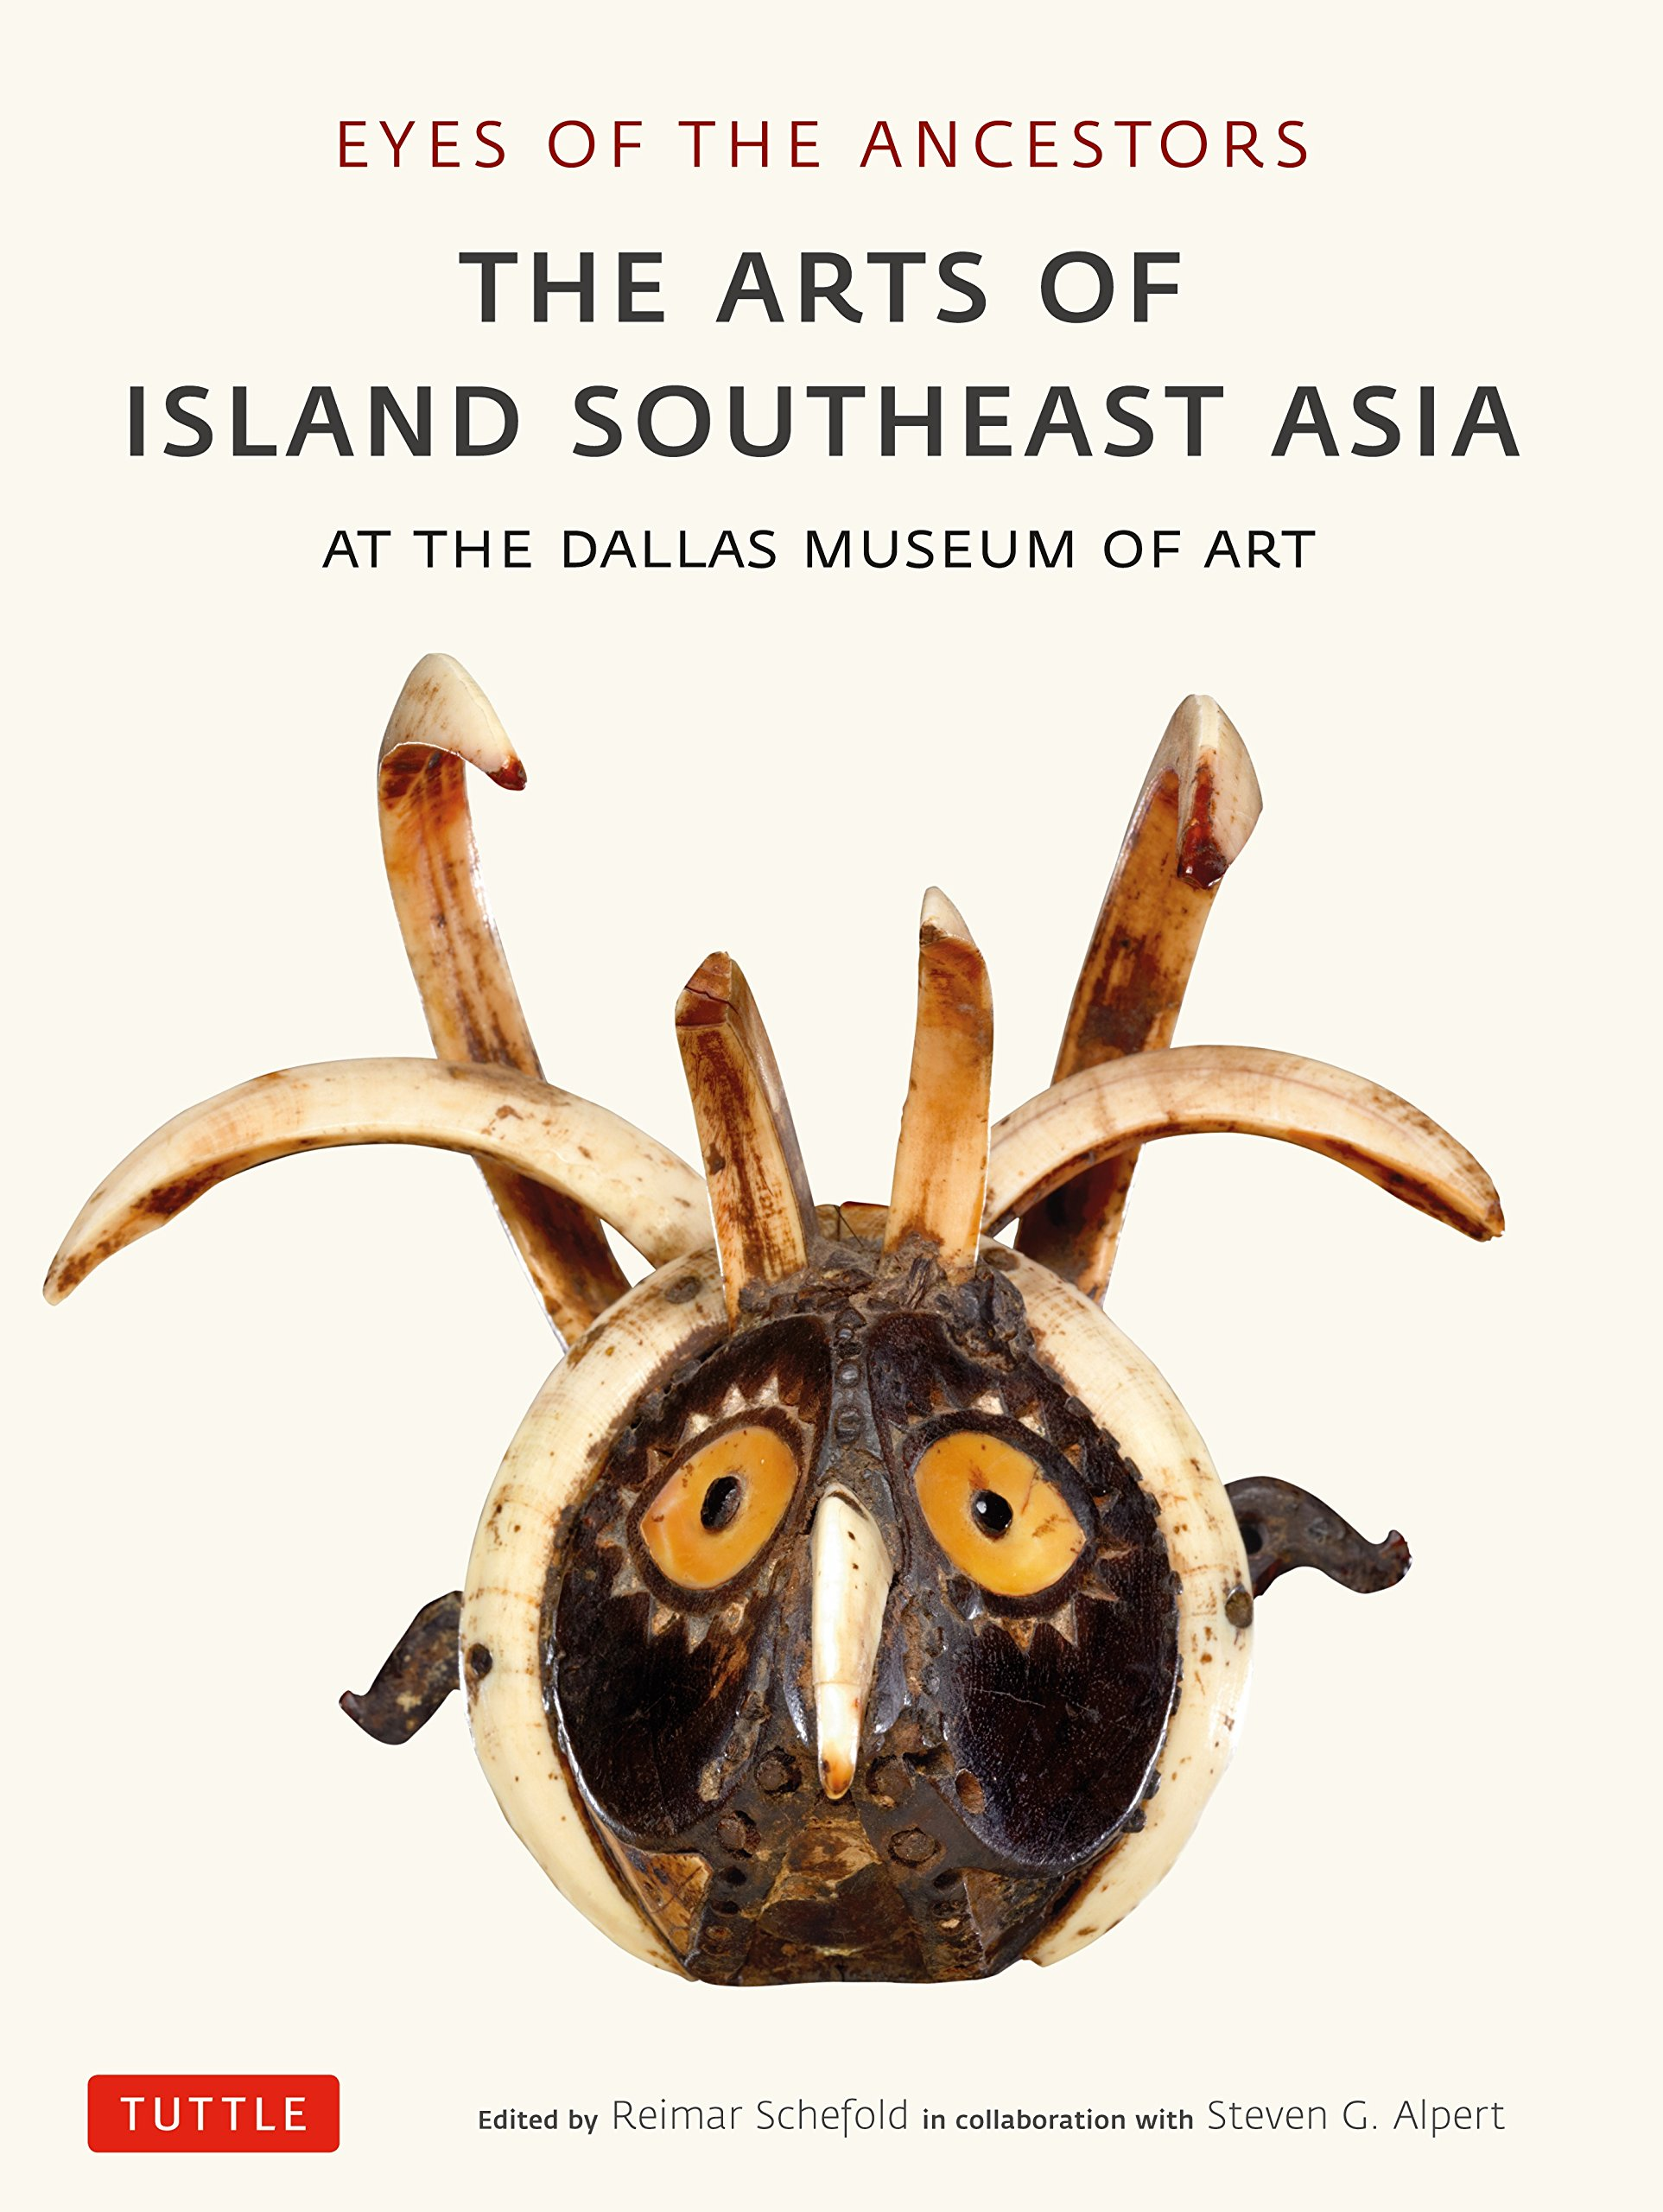 Eyes of the Ancestors The Arts of Island Southeast Asia at the Dallas Museum of Art Reimar Schefold Steven G. Alpert